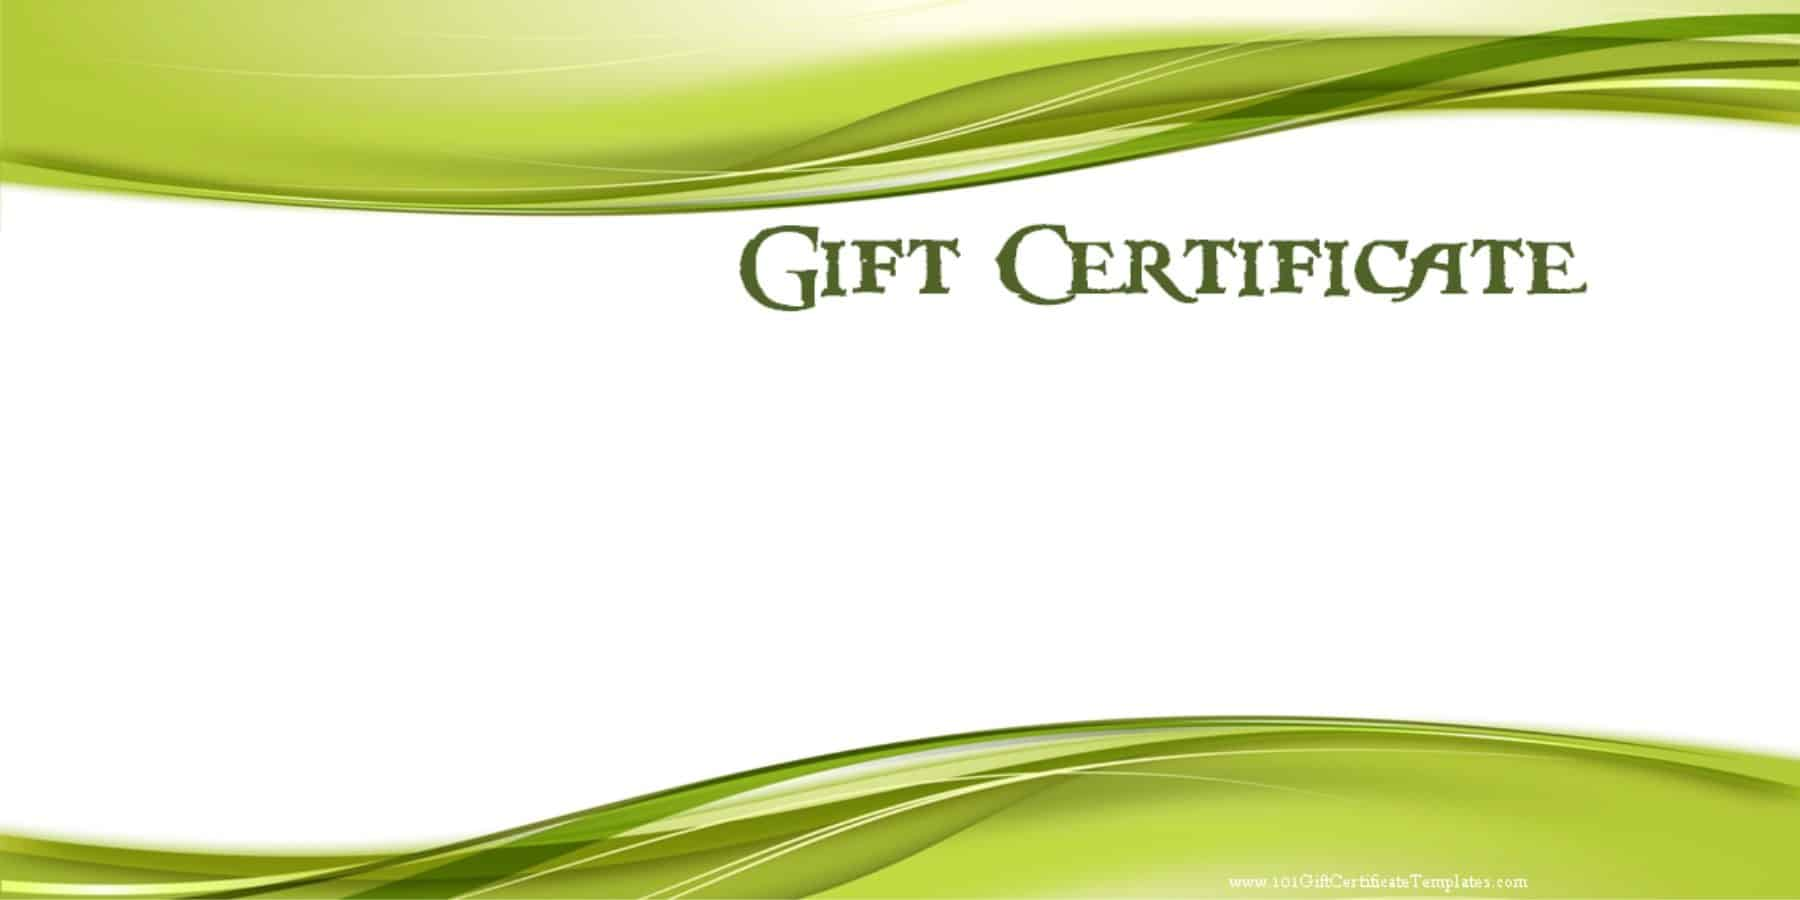 Printable gift certificate templates blank gift certificate which can be customized 1betcityfo Gallery